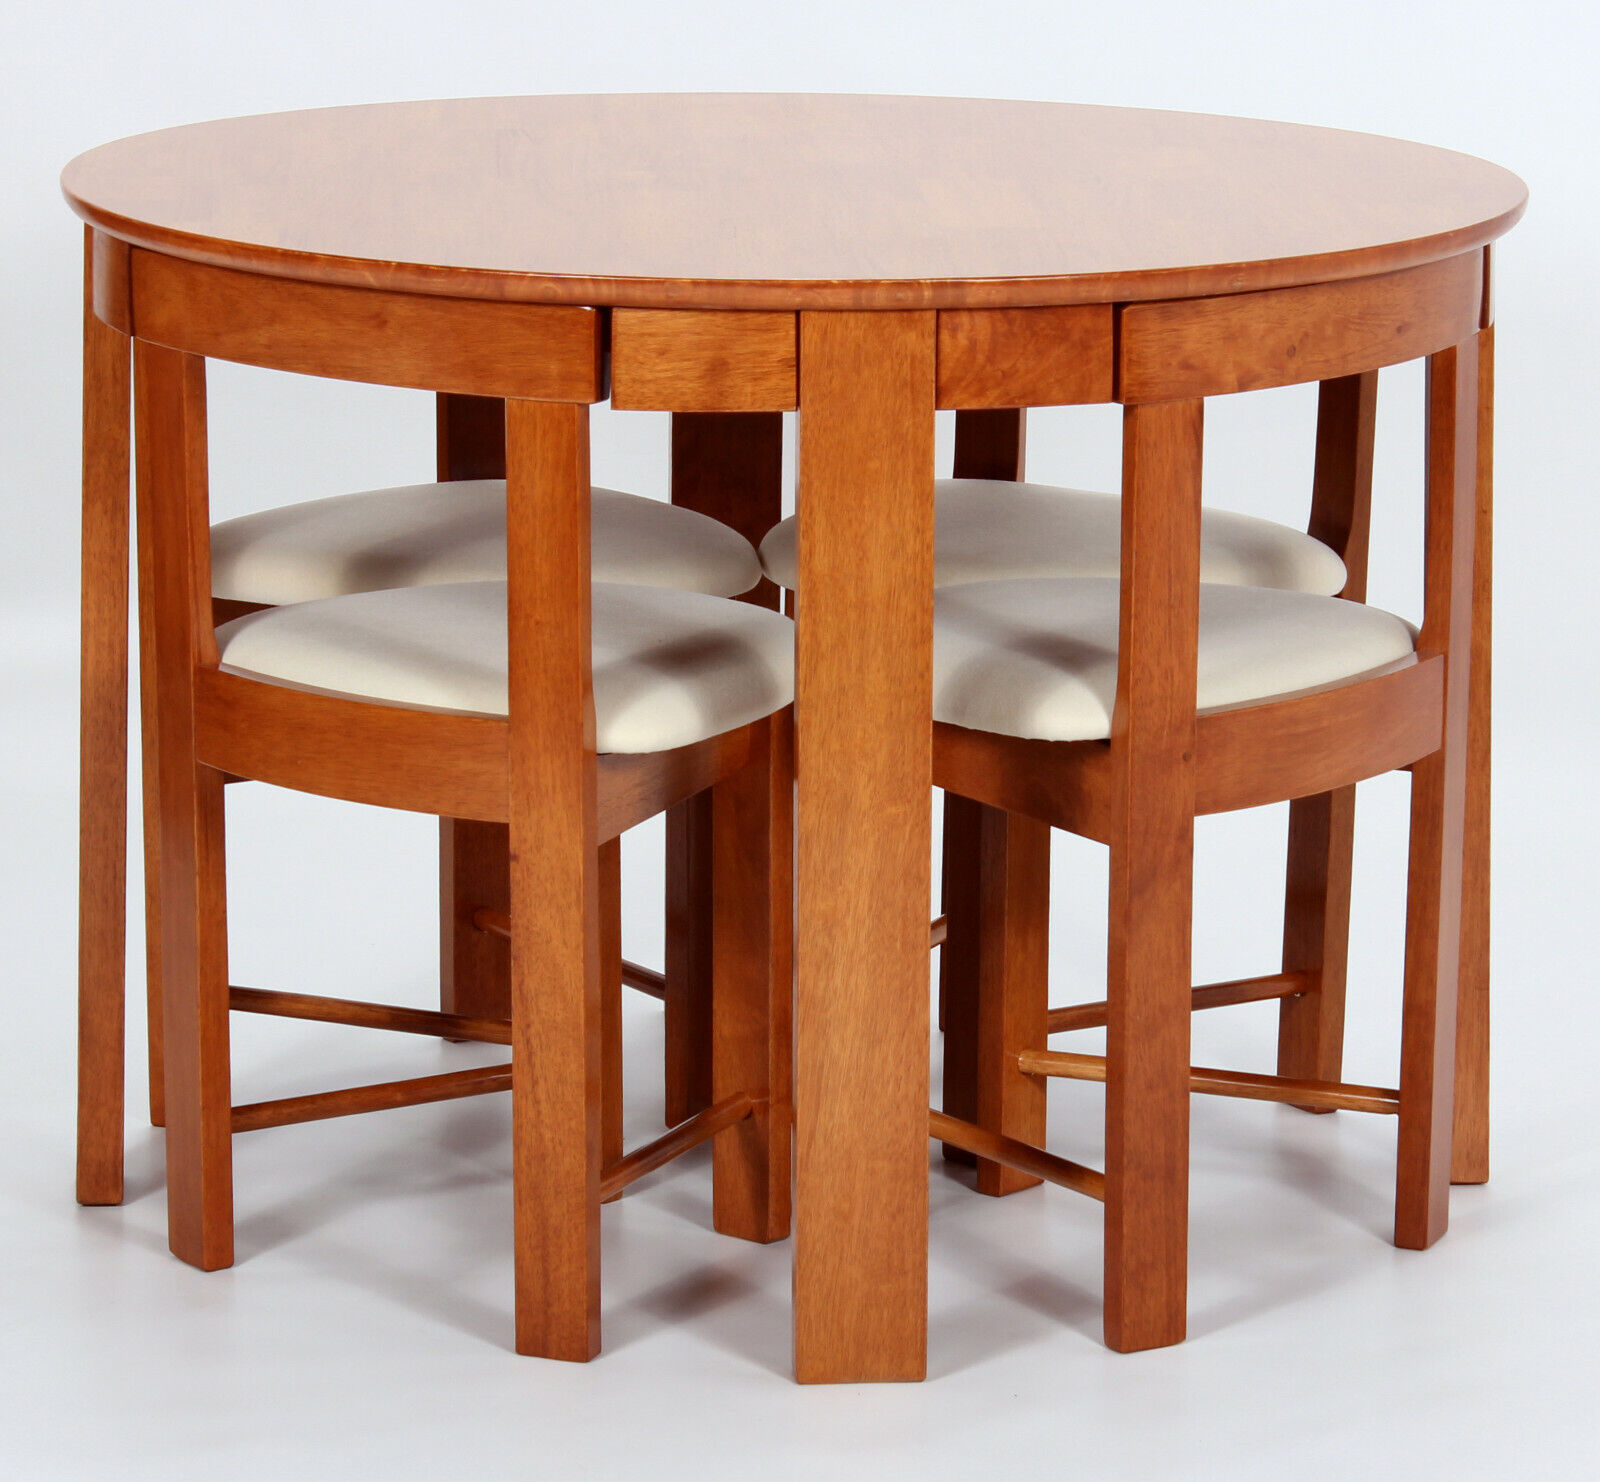 Kitchen Dining Table Set Round Top Four